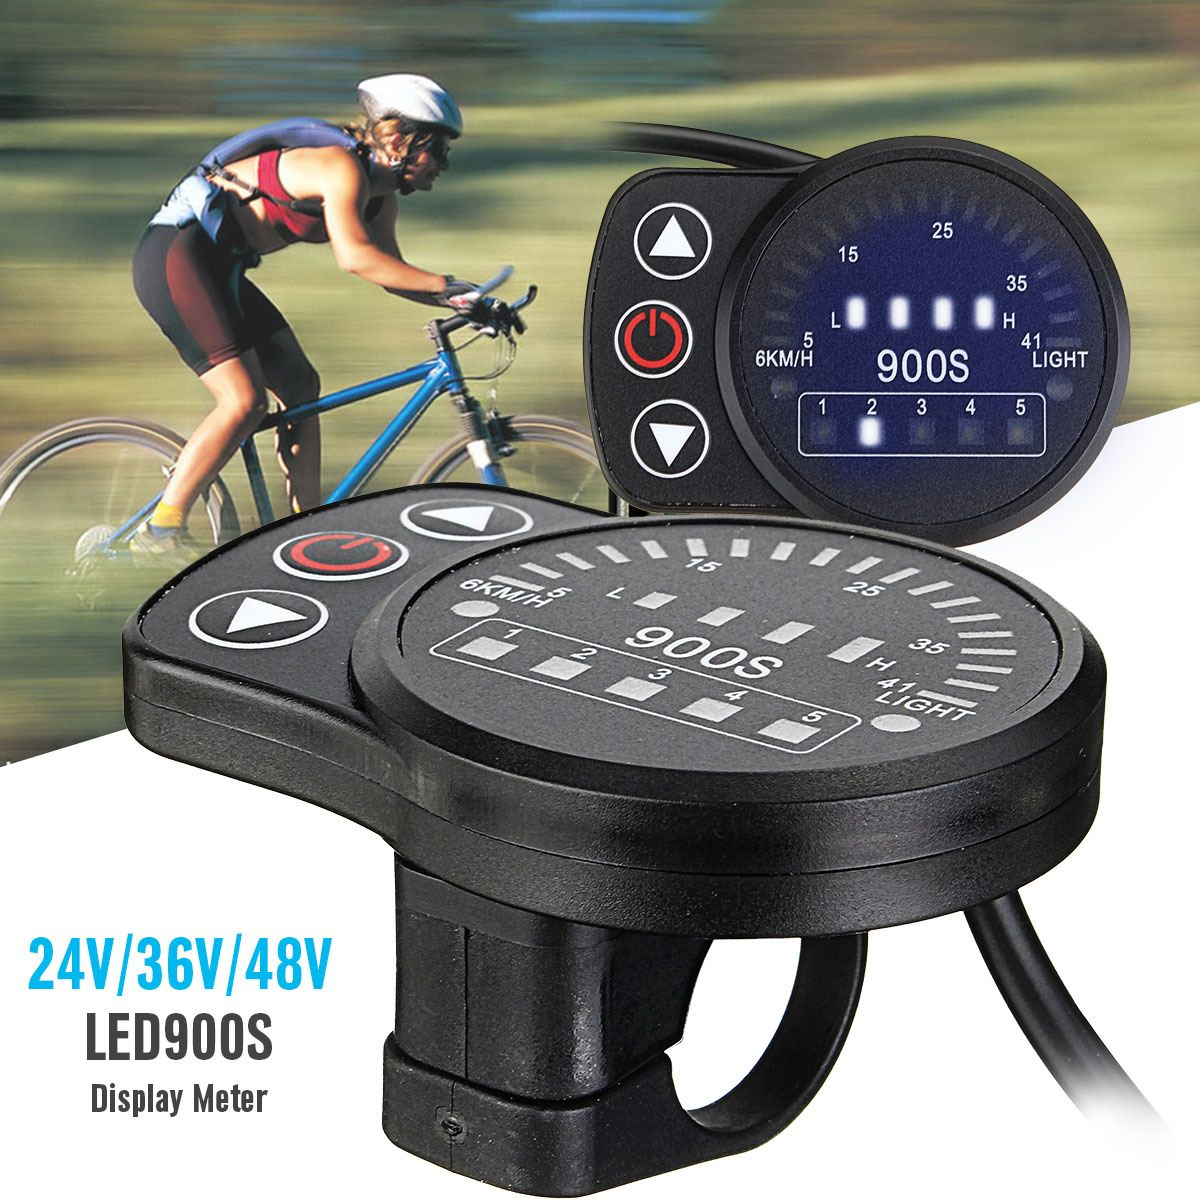 Precise Ebike Led Display Electric Bicycle Control Panel Electric Scooter Display Meter Intelligent 24v/36v/48v Kt-led900s Bike Automobiles & Motorcycles Accessories